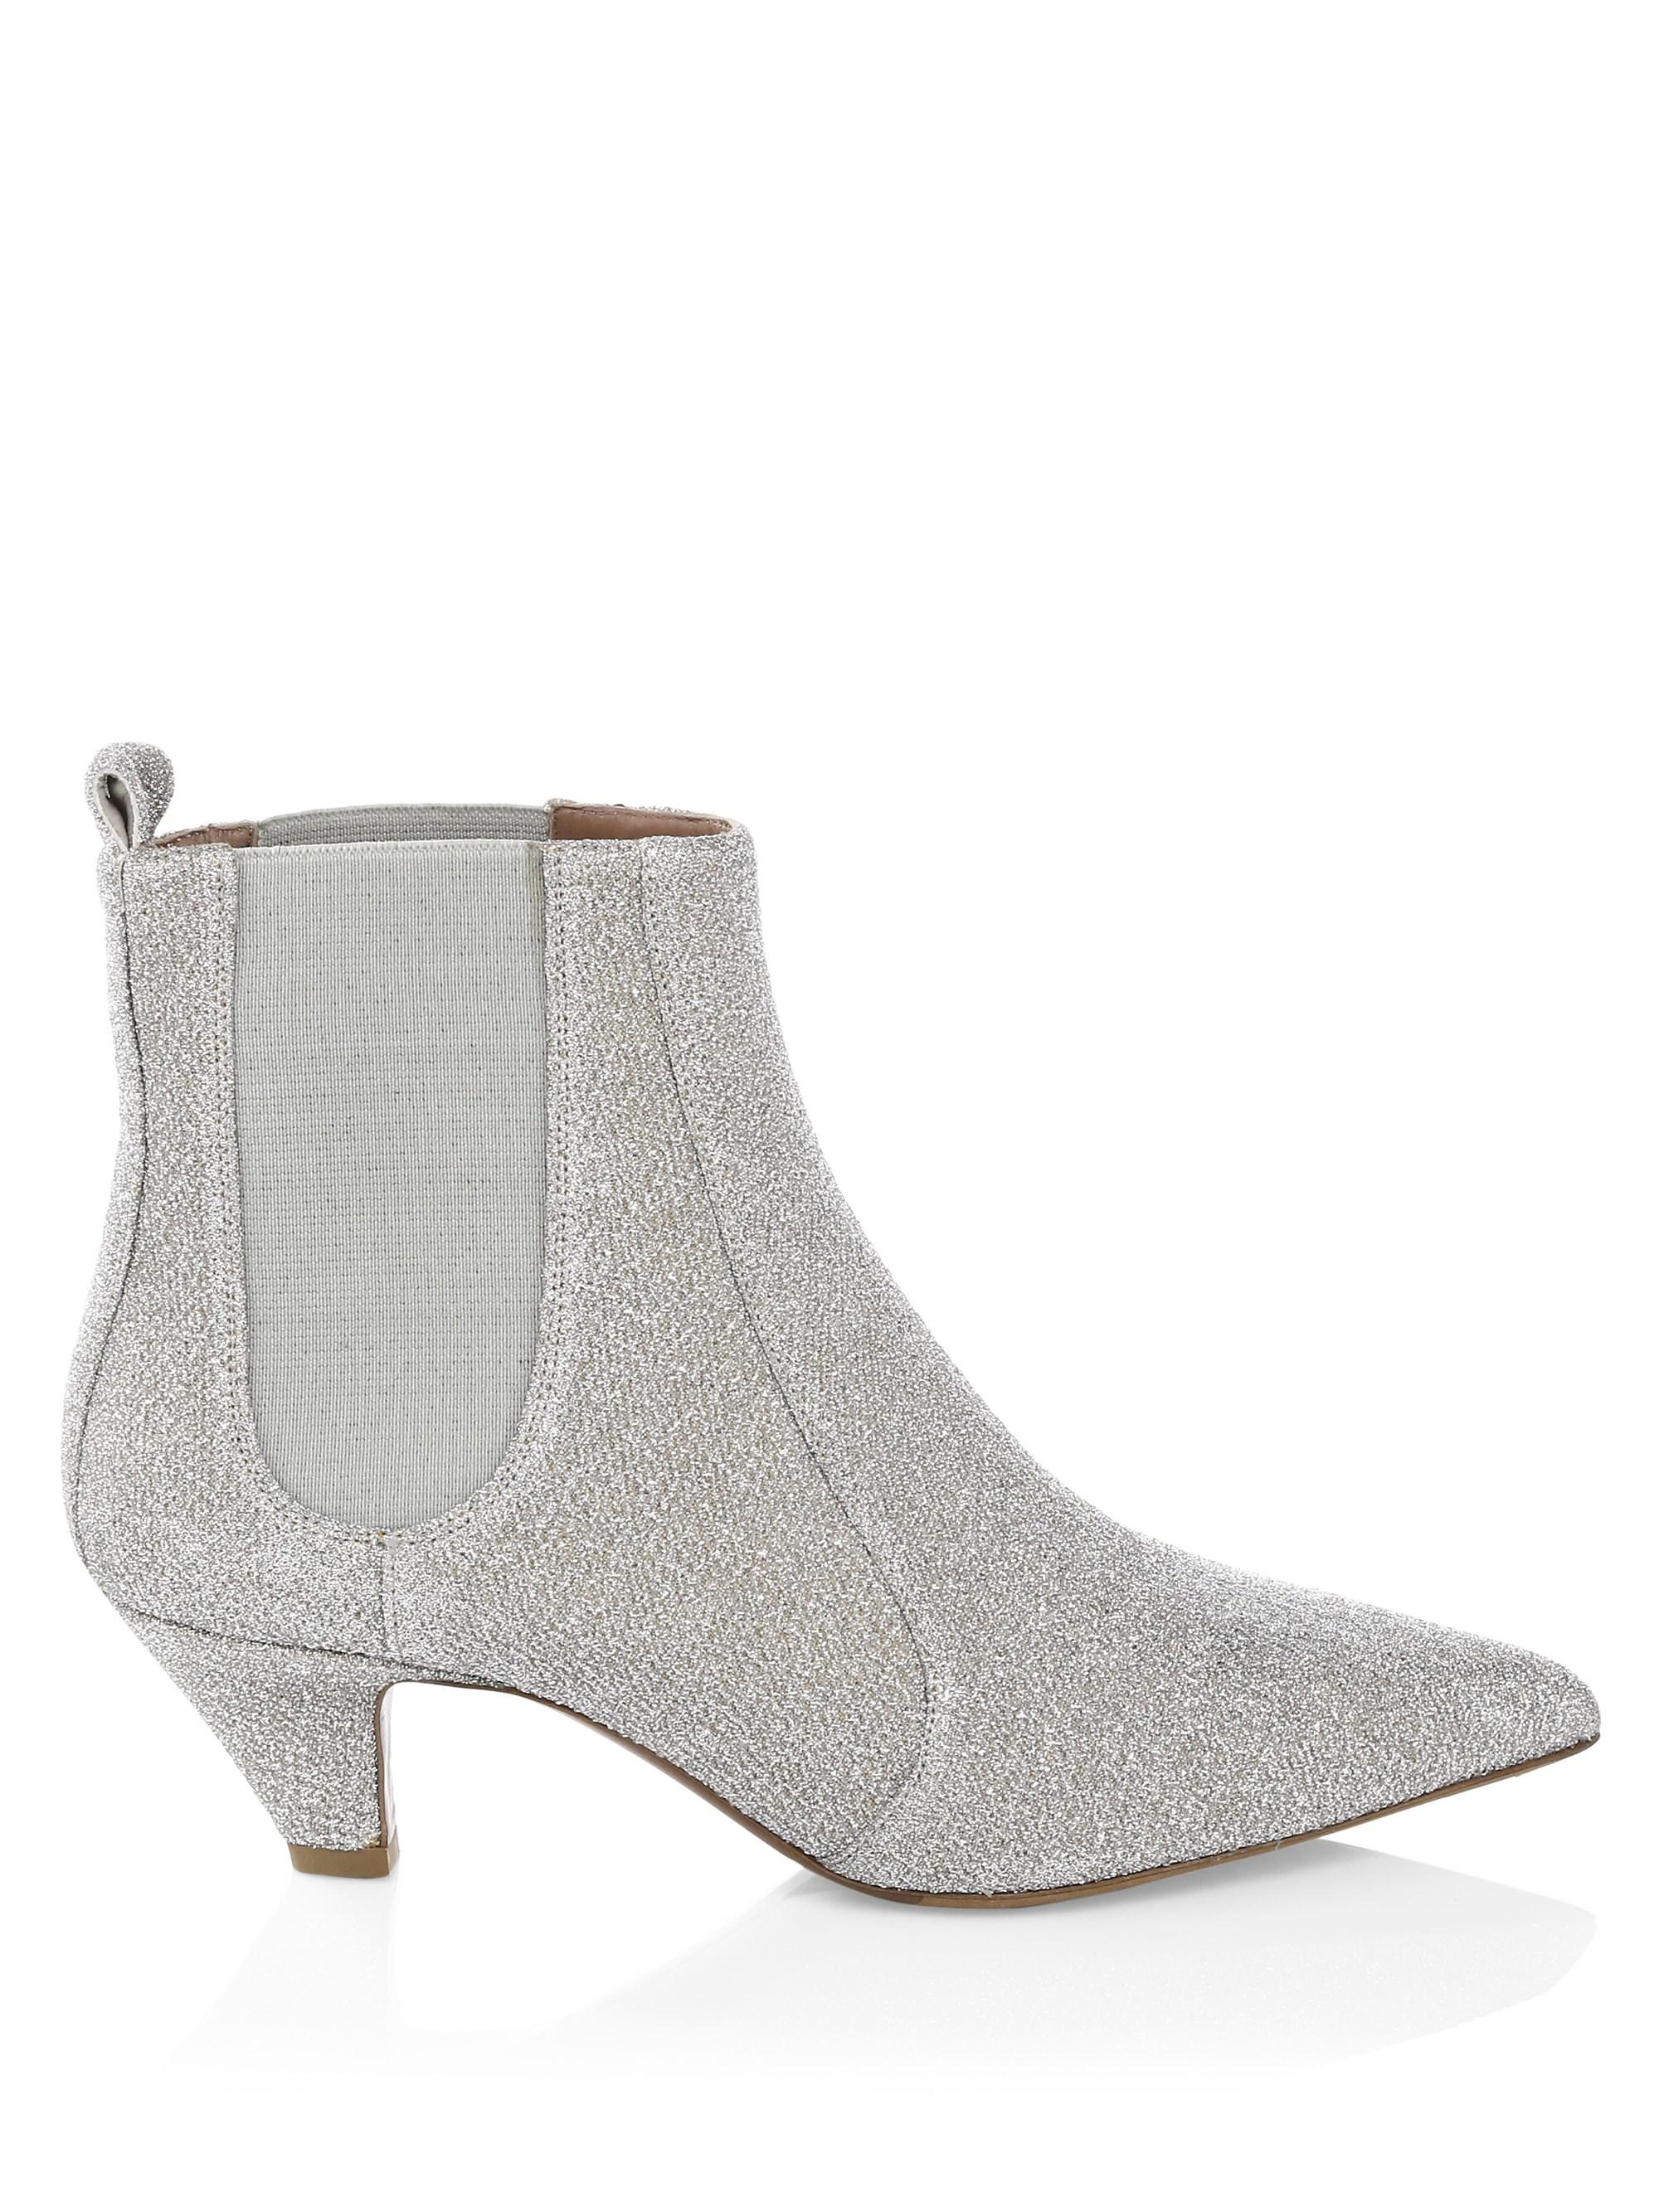 Tabitha Simmons Effie Sequin Ankle Boots d7MJ8OnCN